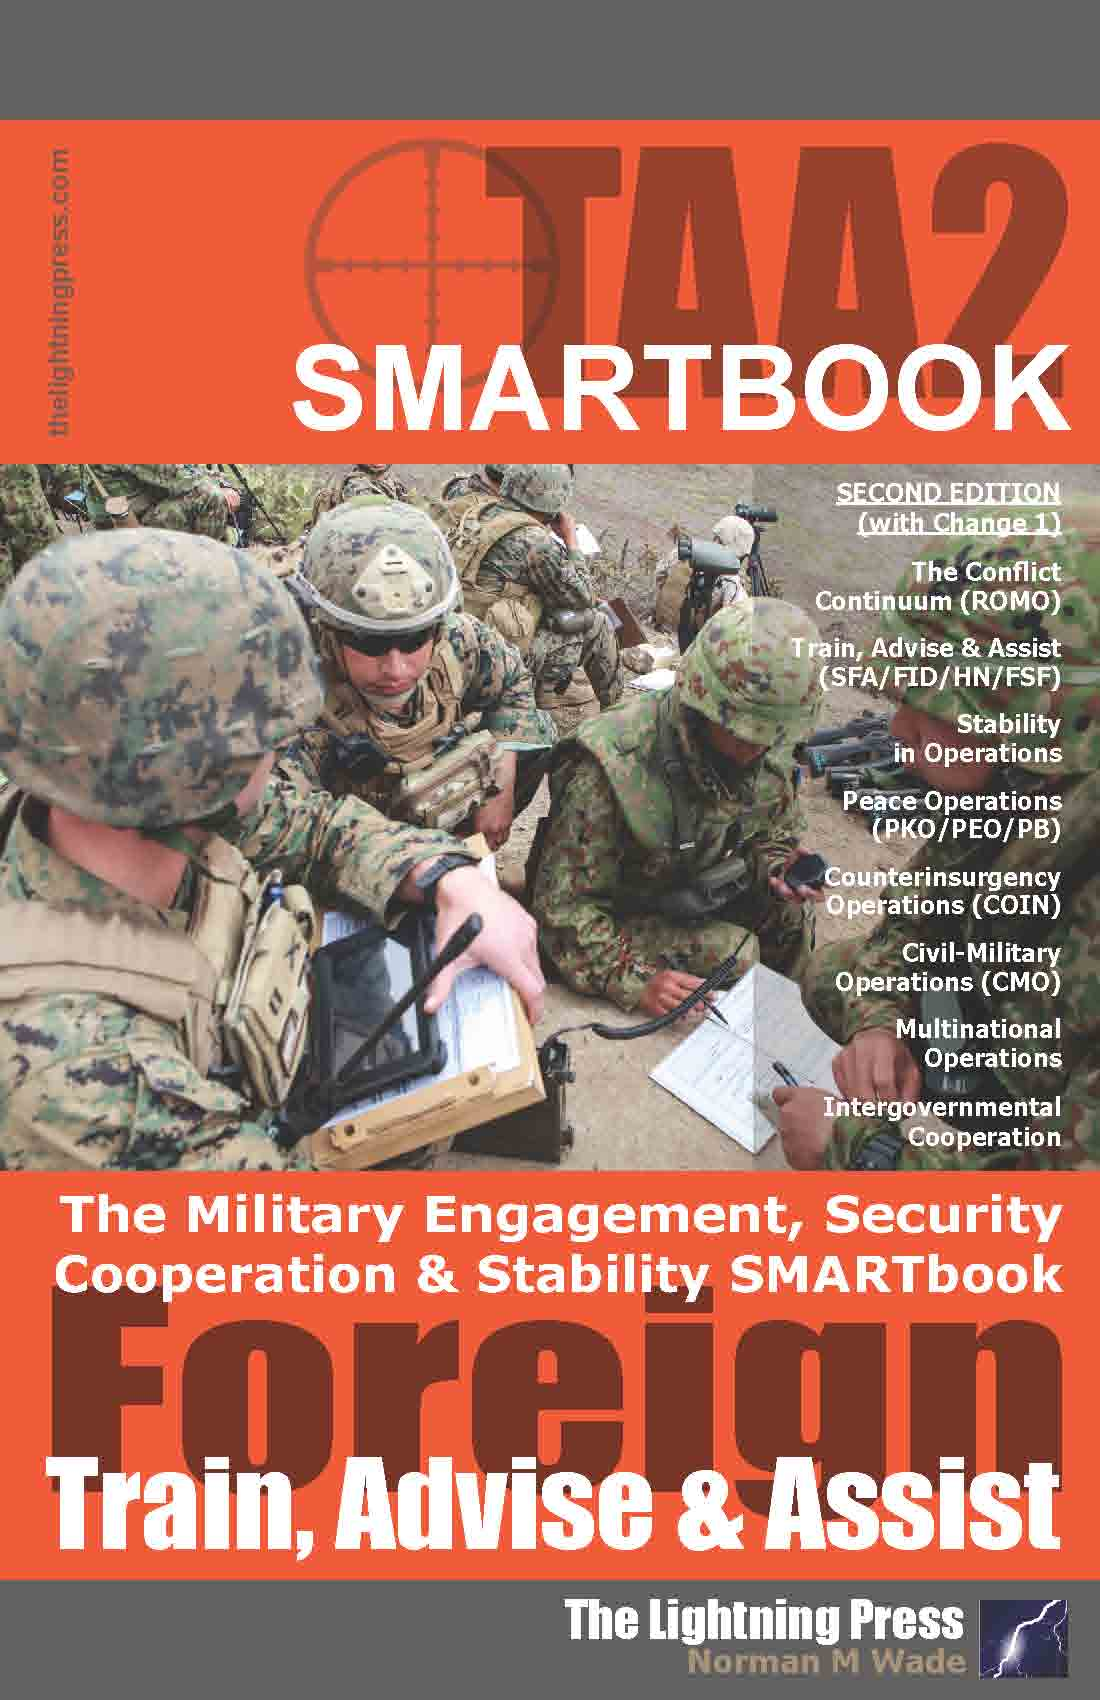 TAA2: The Military Engagement, Security Cooperation & Stability SMARTbook, 2nd Ed. (w/Change 1)